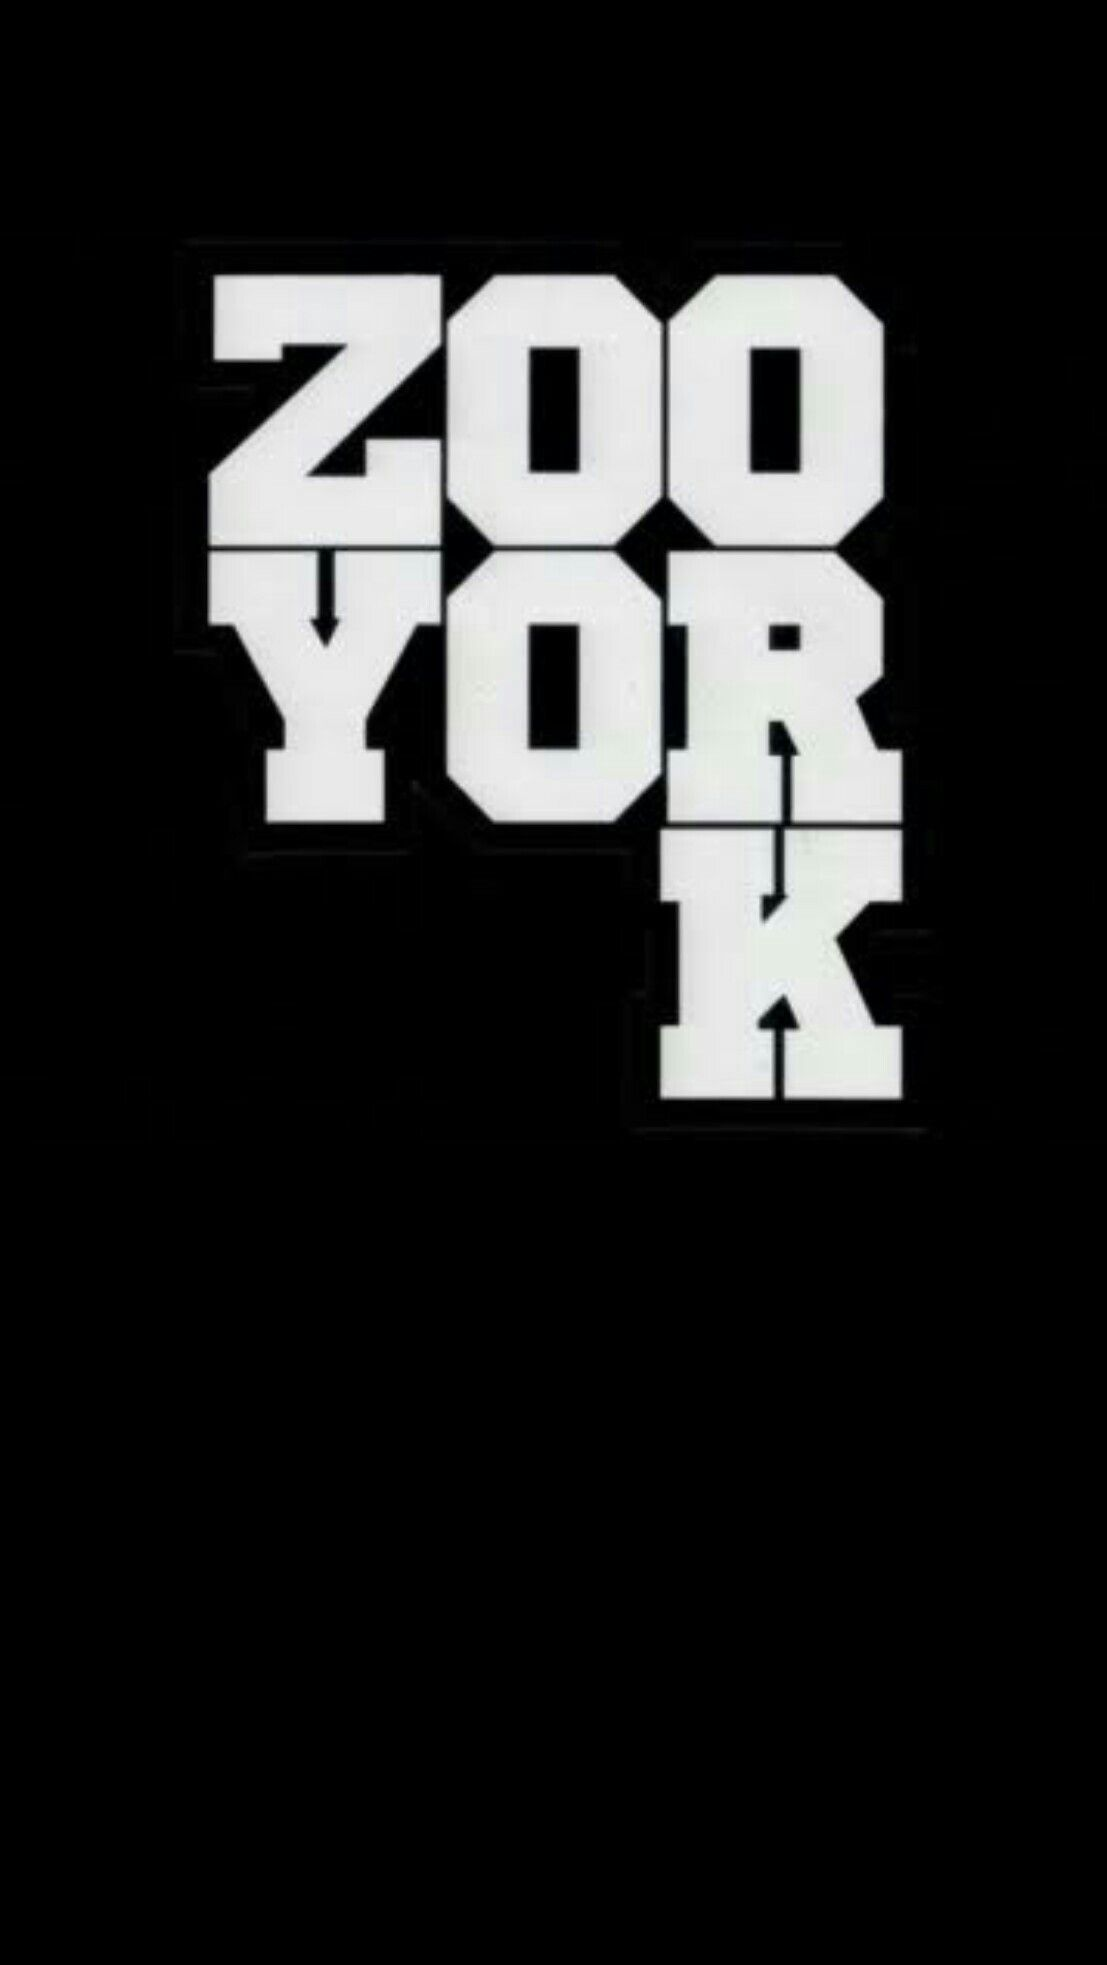 zoo york black wallpaper android iphone